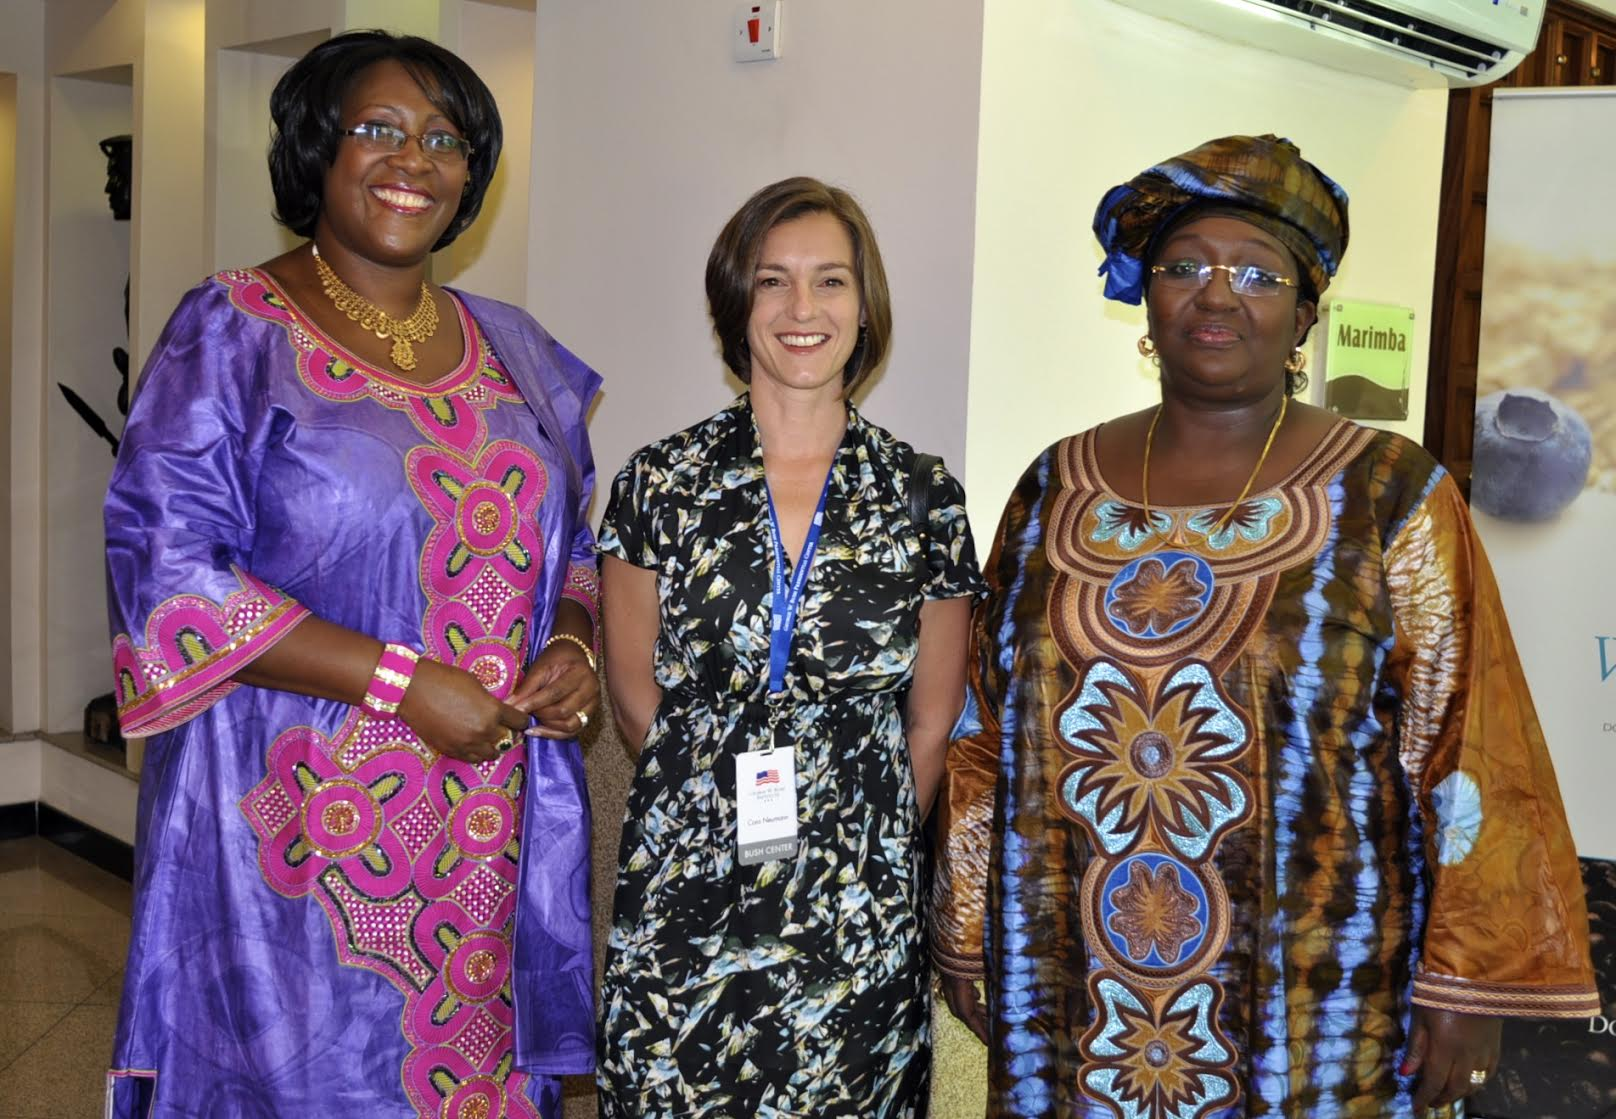 Cora  with First Lady Dr. Kaseba (Zambia), and First Lady Koroma (Sierra Leone) during the 2013 First Ladies Summit in Tanzania, which brought 12 African First Ladies, Michelle Obama and Laura Bush together to discuss challenges facing women and girls in Africa.